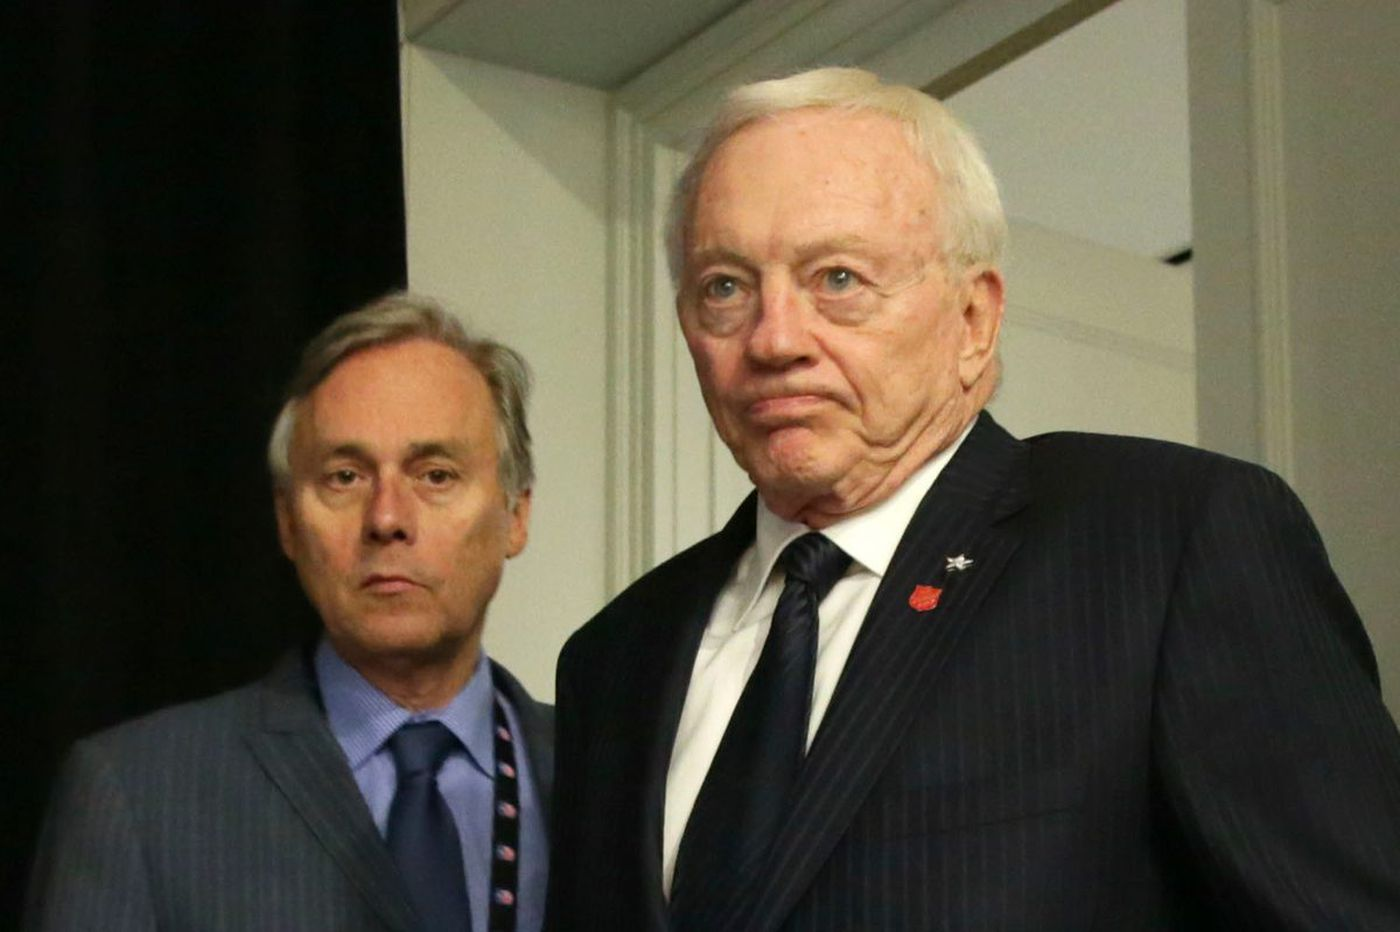 Cowboys owner Jerry Jones hates the Patriots more than the Eagles, apparently